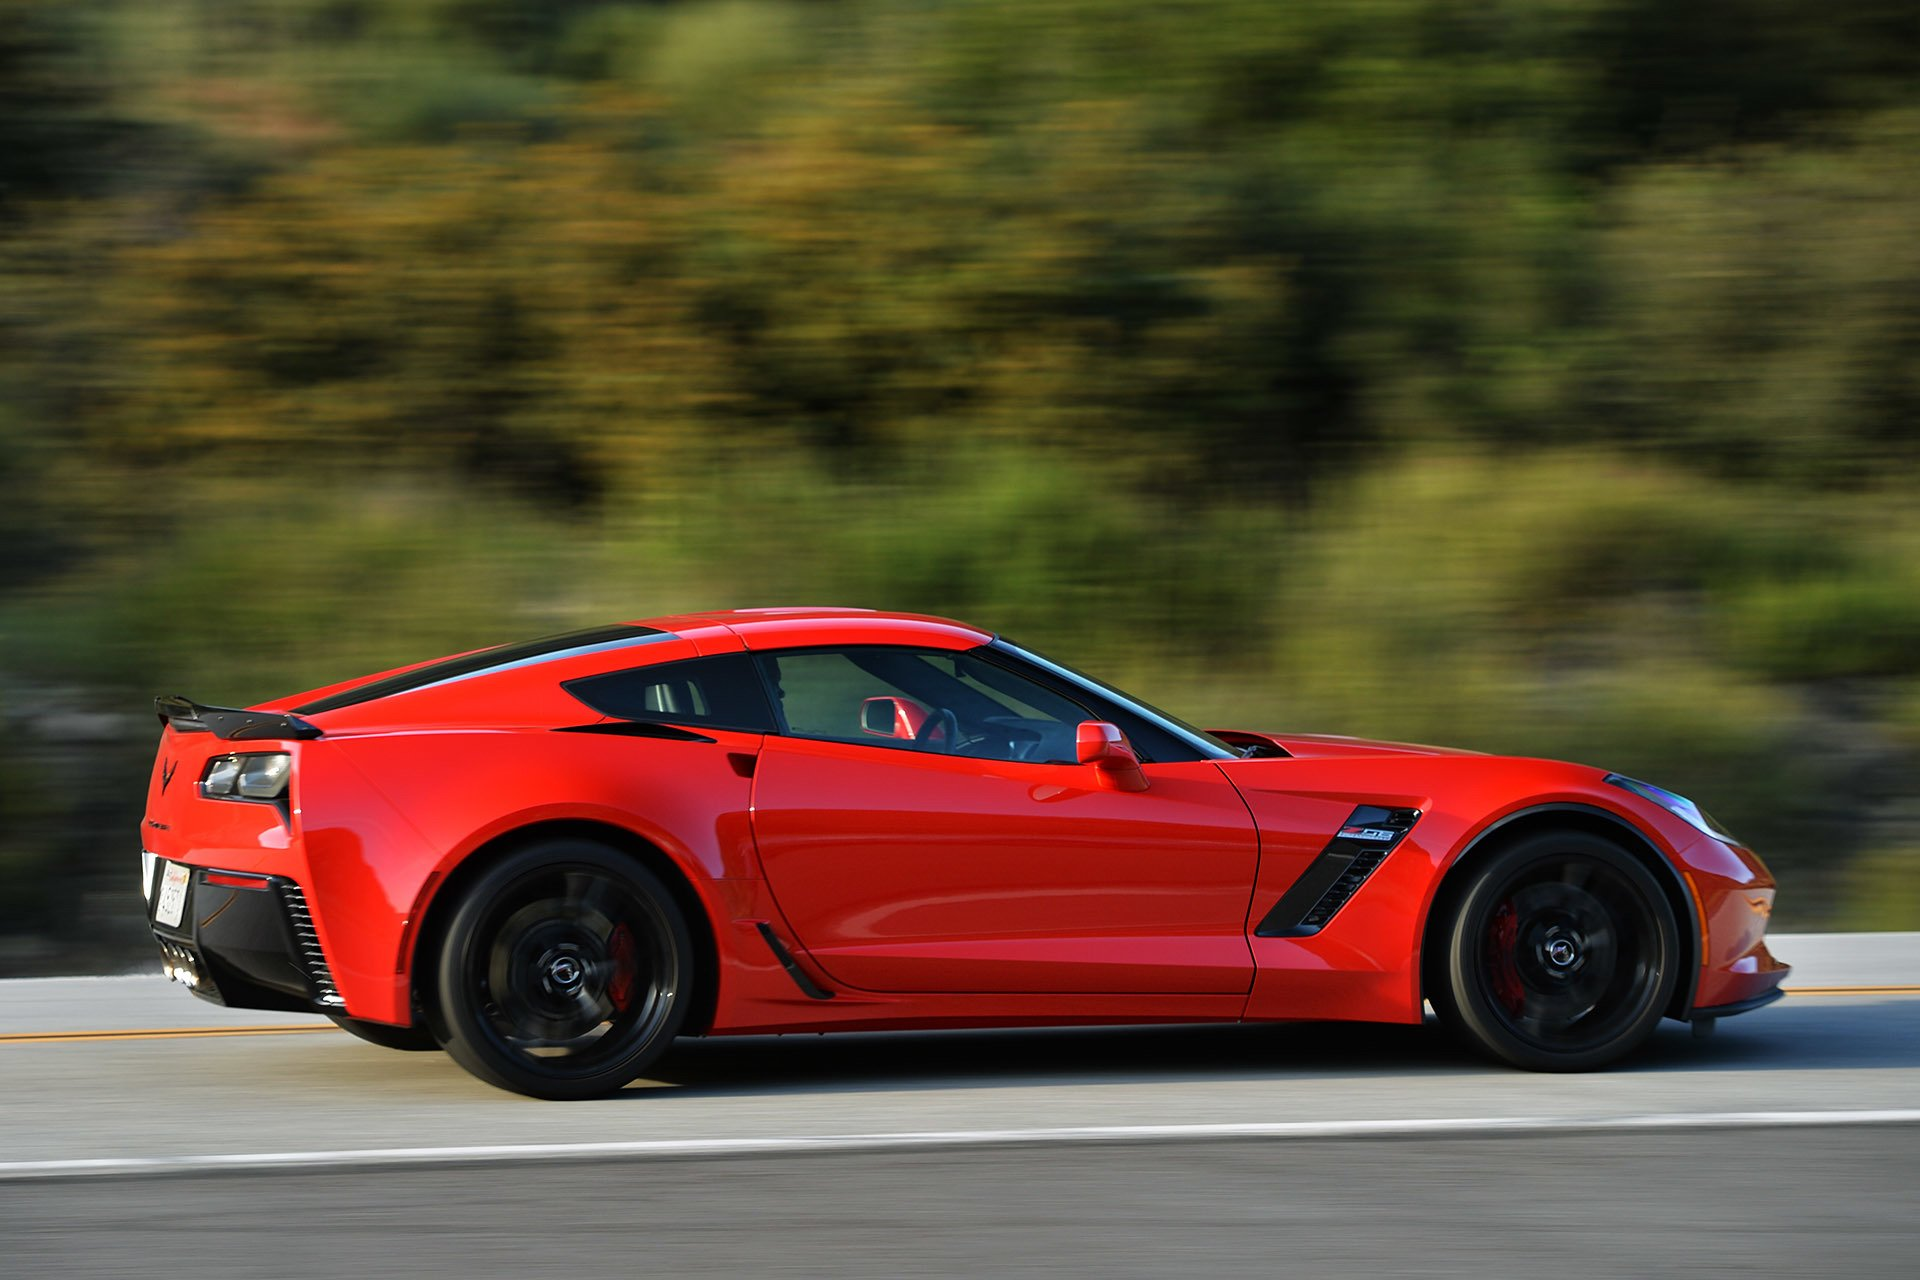 2015 z06 wallpaper - photo #49